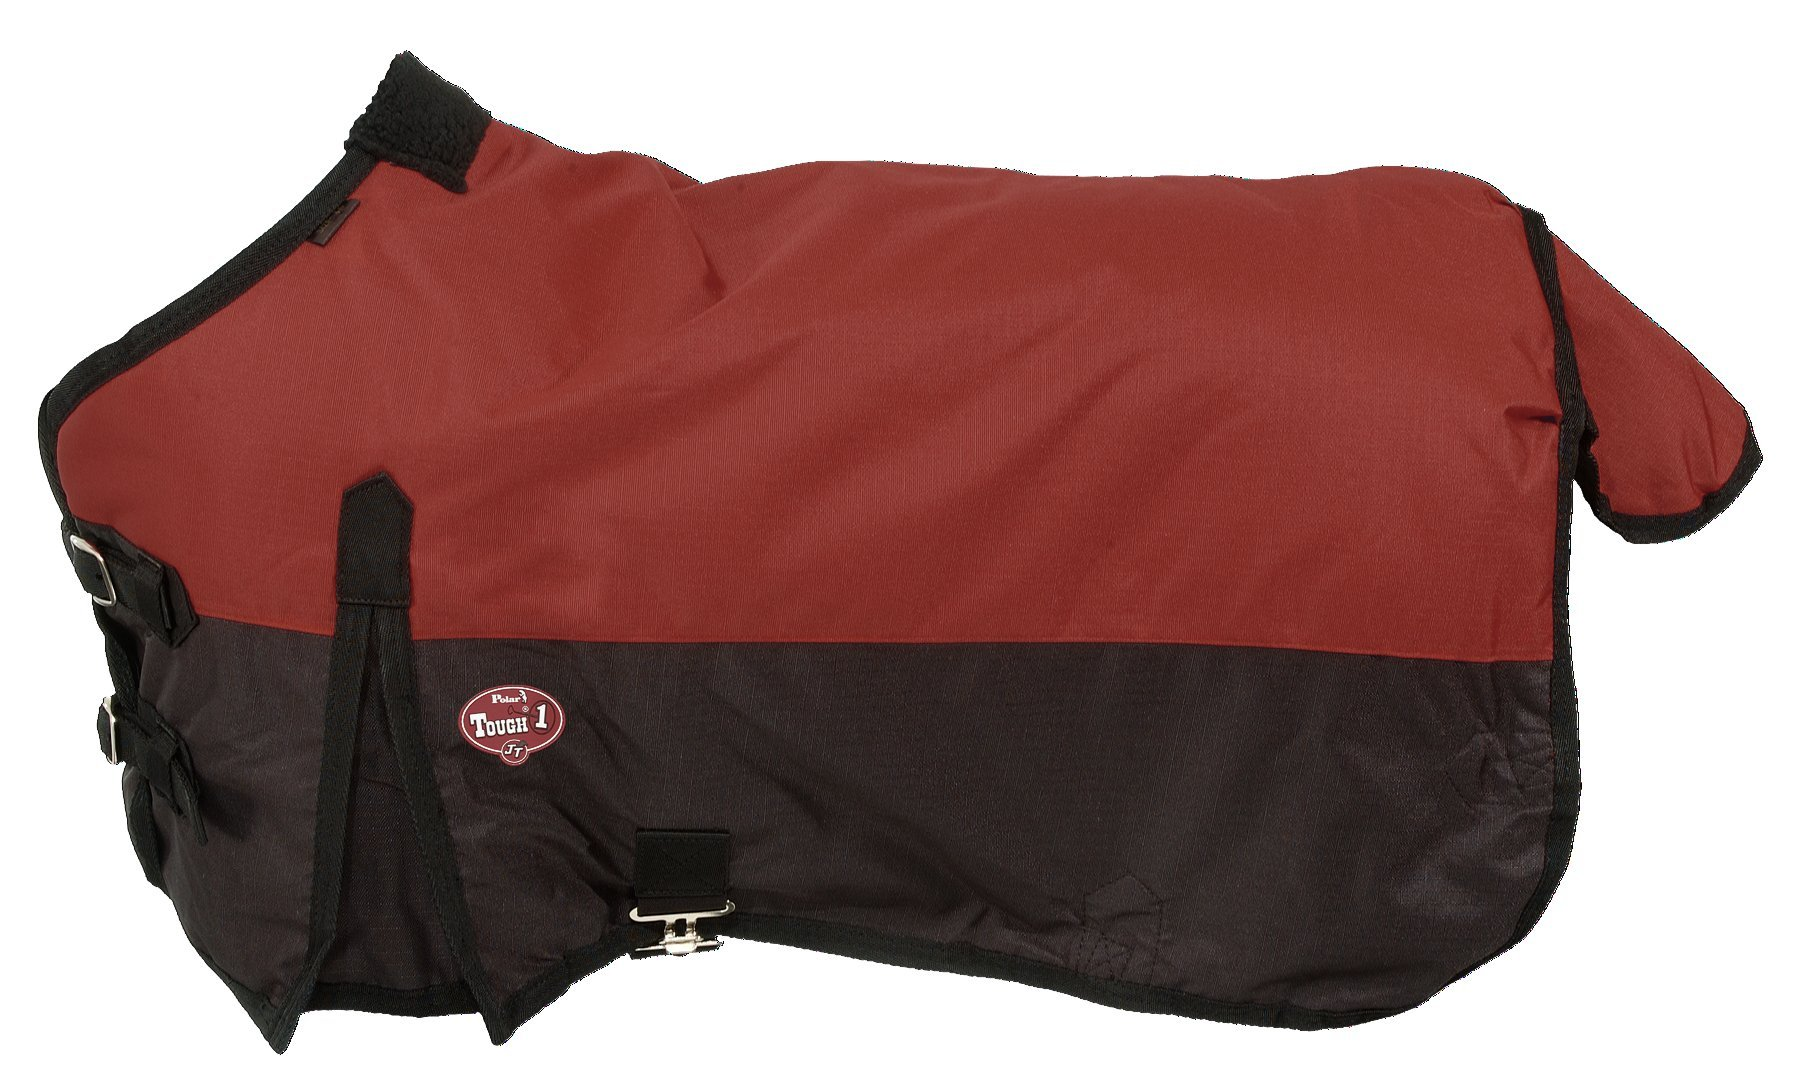 Tough 1 600D Waterproof Poly Miniature Turnout Blanket, Burgundy, 40''